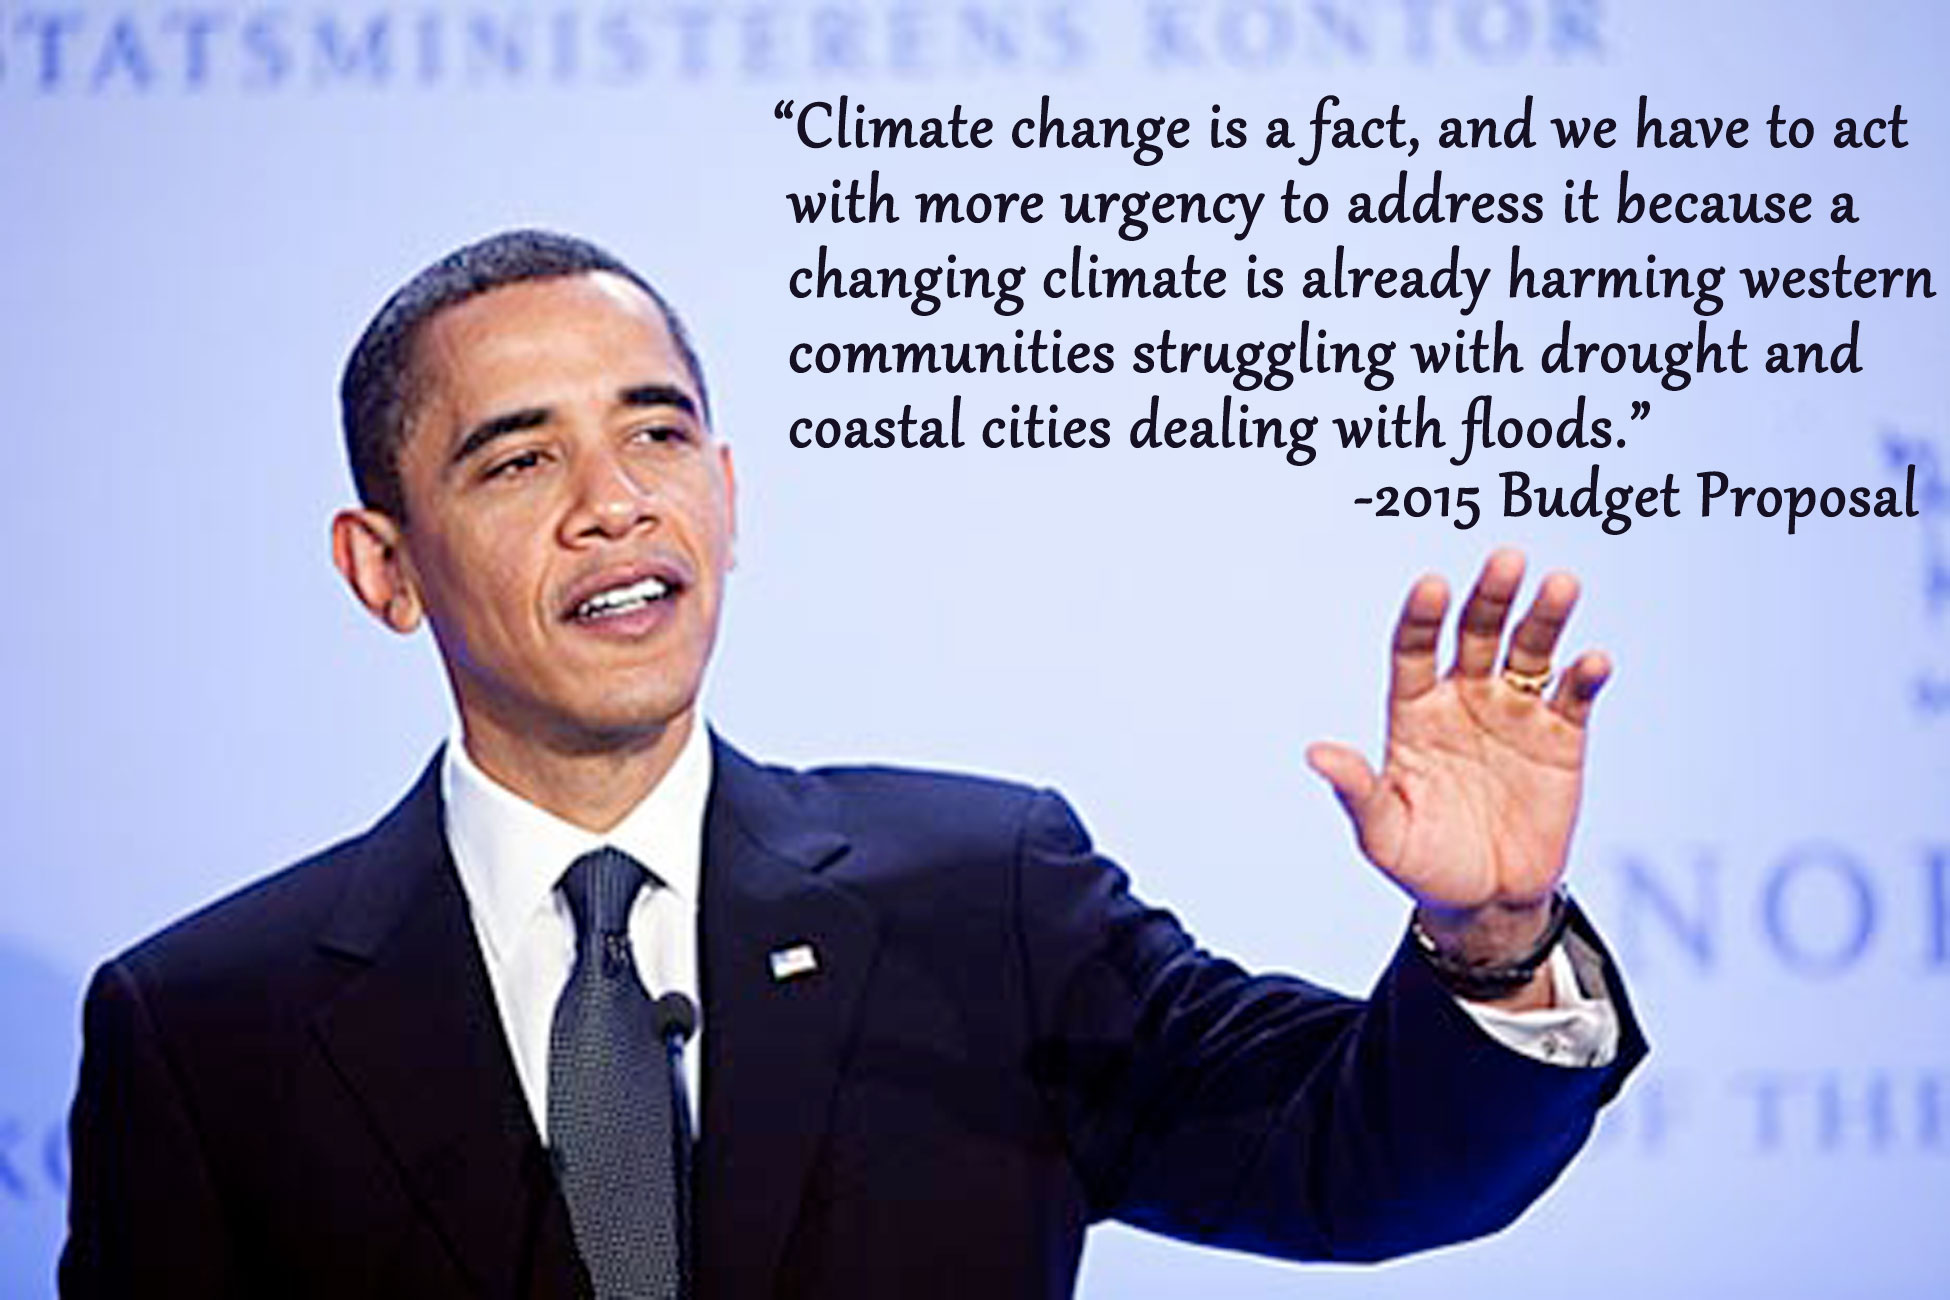 Global Warming Quotes Obama Budget Includes Wish List For Climate Change Spending